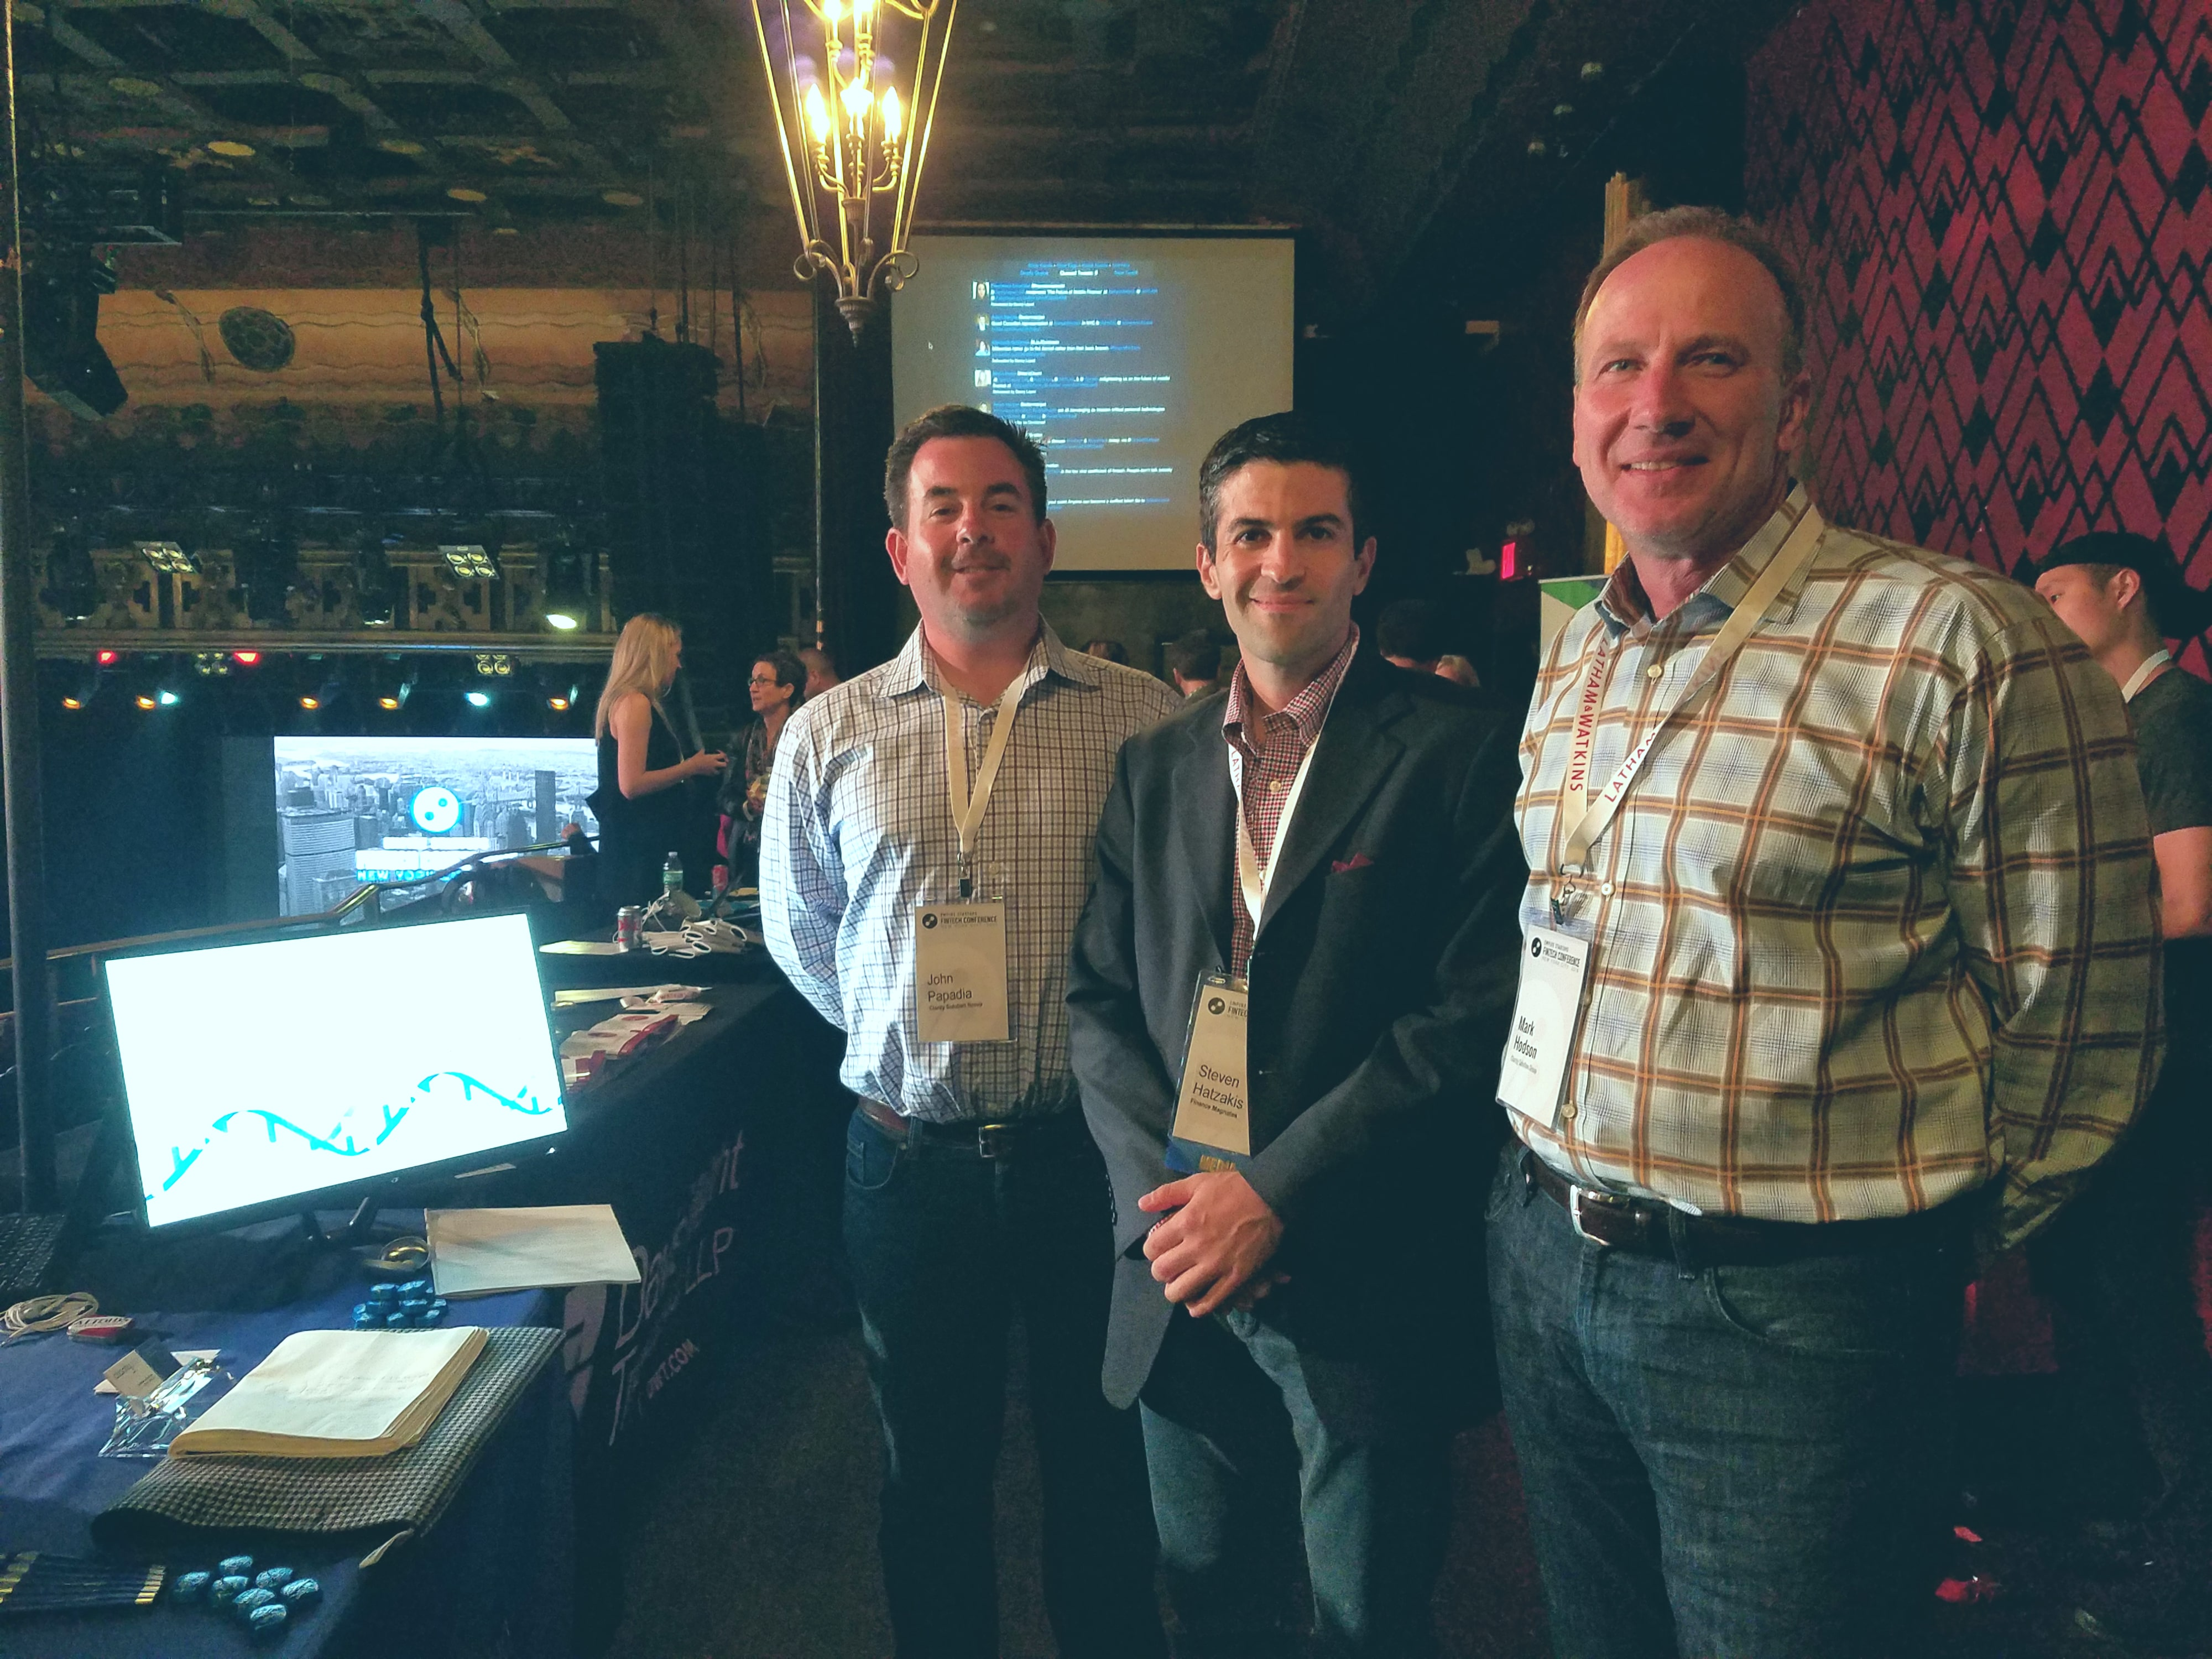 Finance Magnates' Editor Steven Hatzakis (middle) meets with John Papadia (left), President and Founder of Clarity Solutions Group, and Mark Hodson (right), Vice President of Clarity Solutions Group at the company's exhibitor booth at the Empire Startups Fintech NY conference April 28, 2016.